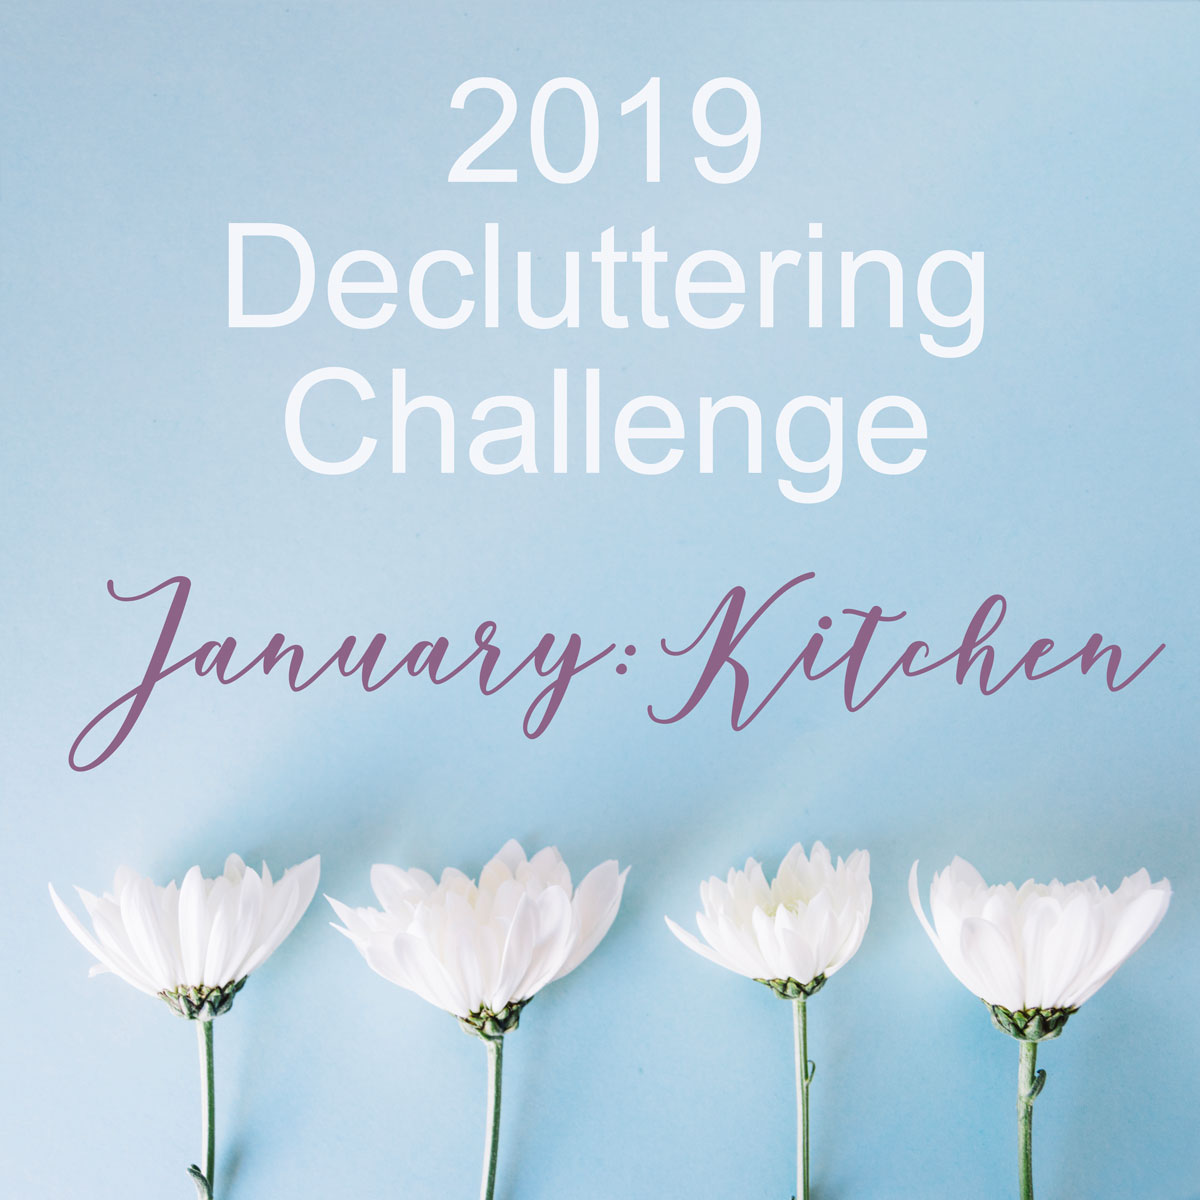 2019 Decluttering Challenge- In January we are focusing on decluttering and organizing the kitchen!